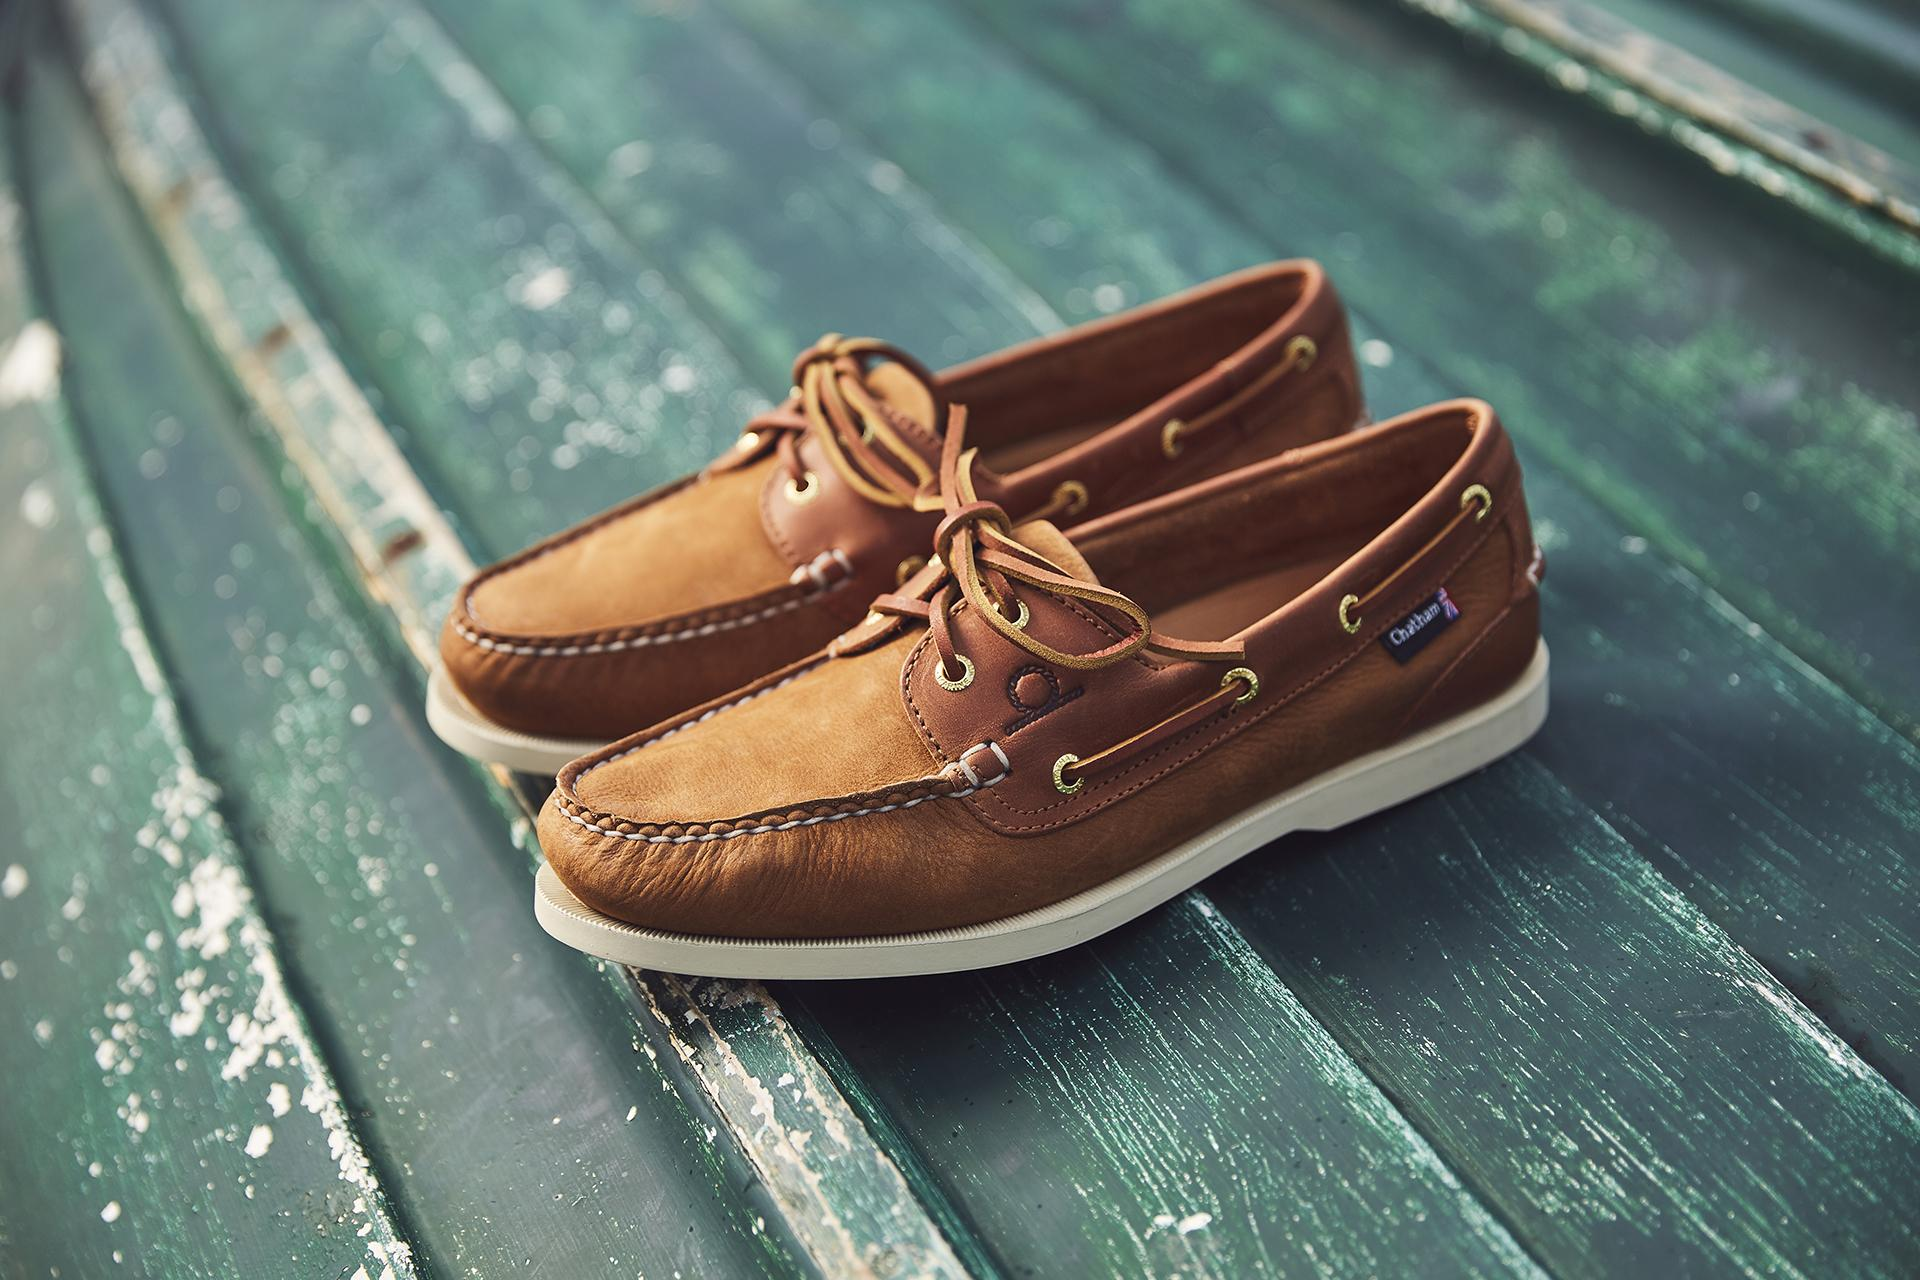 Chatham – Galley II deck shoes